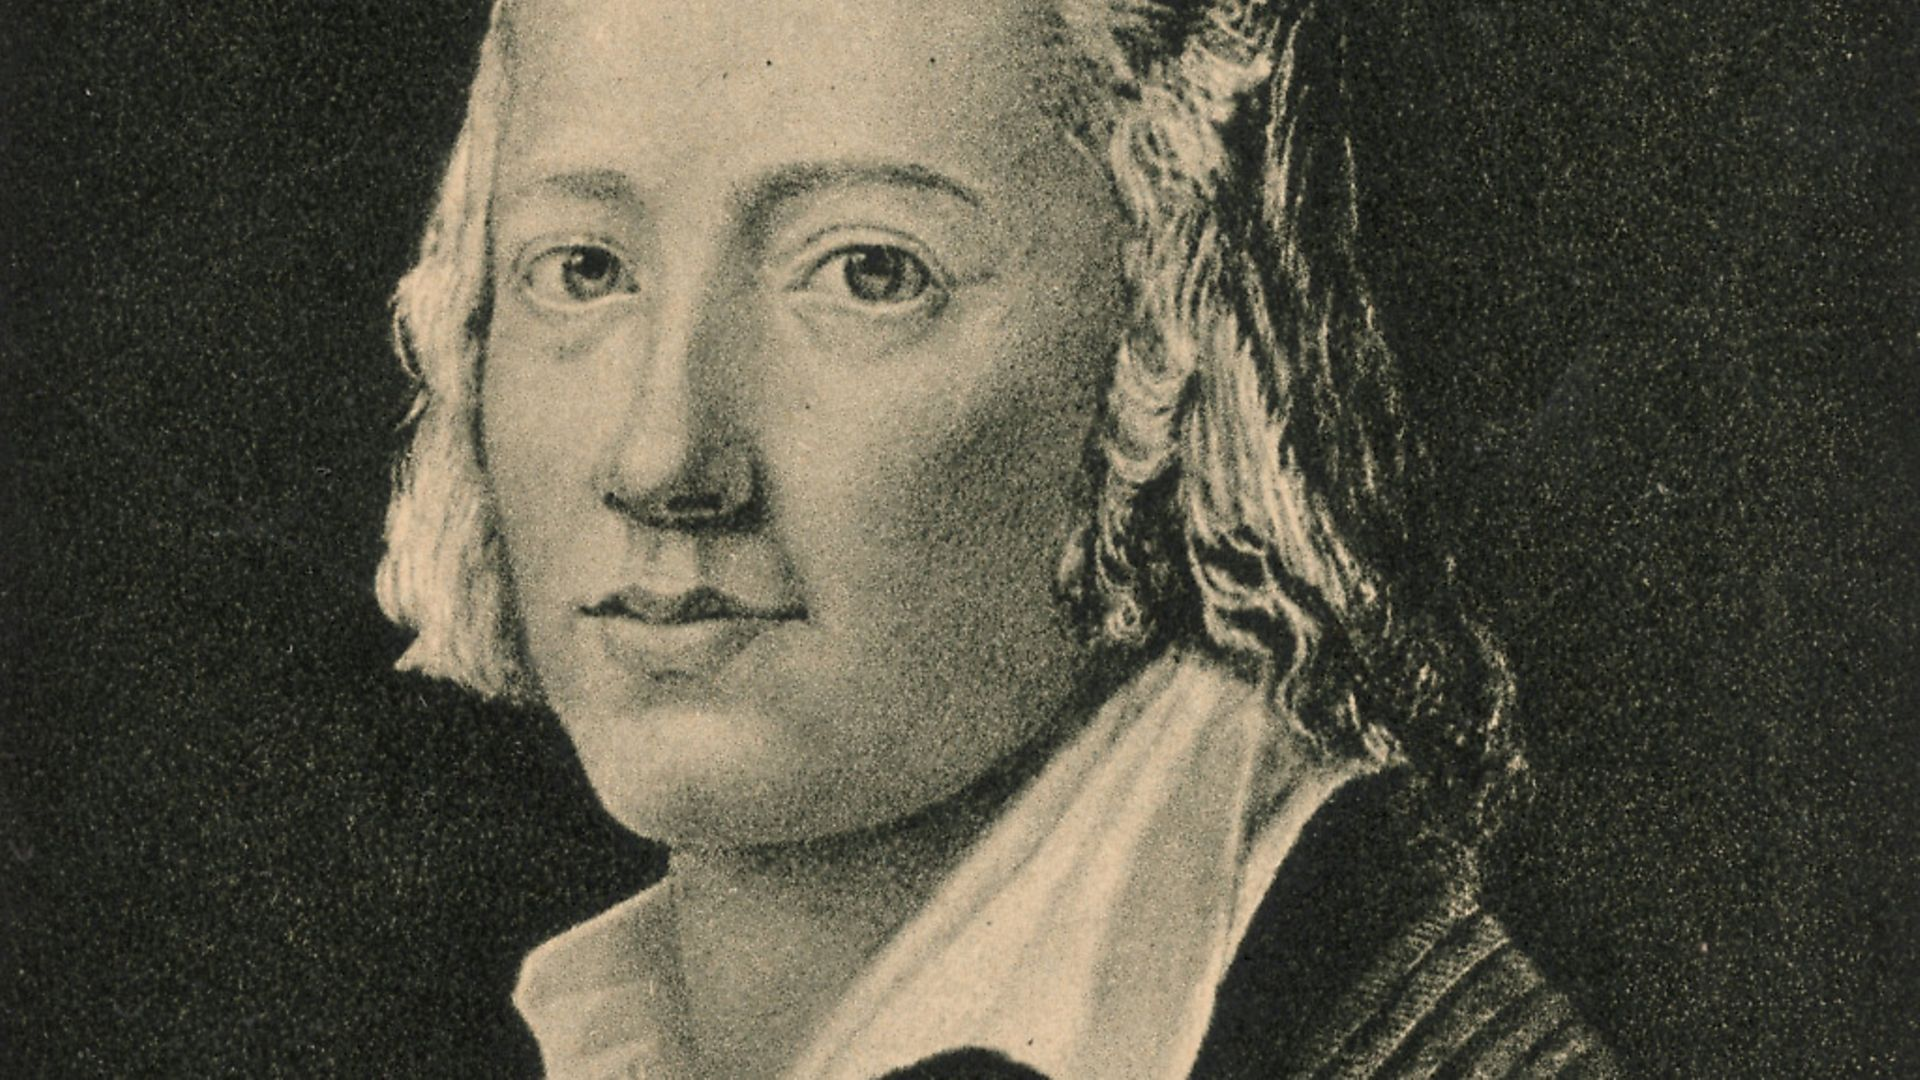 One of Germany's greatest lyric poets, Johann Christian Friedrich Holderlin (1771 - 1843). Although suffering from periods of mental illness, he managed to produce works such as 'An die Hoffnung' (On Hope) and the novel 'Hyperion'.   (Photo by Hulton Archive/Getty Images) - Credit: Getty Images